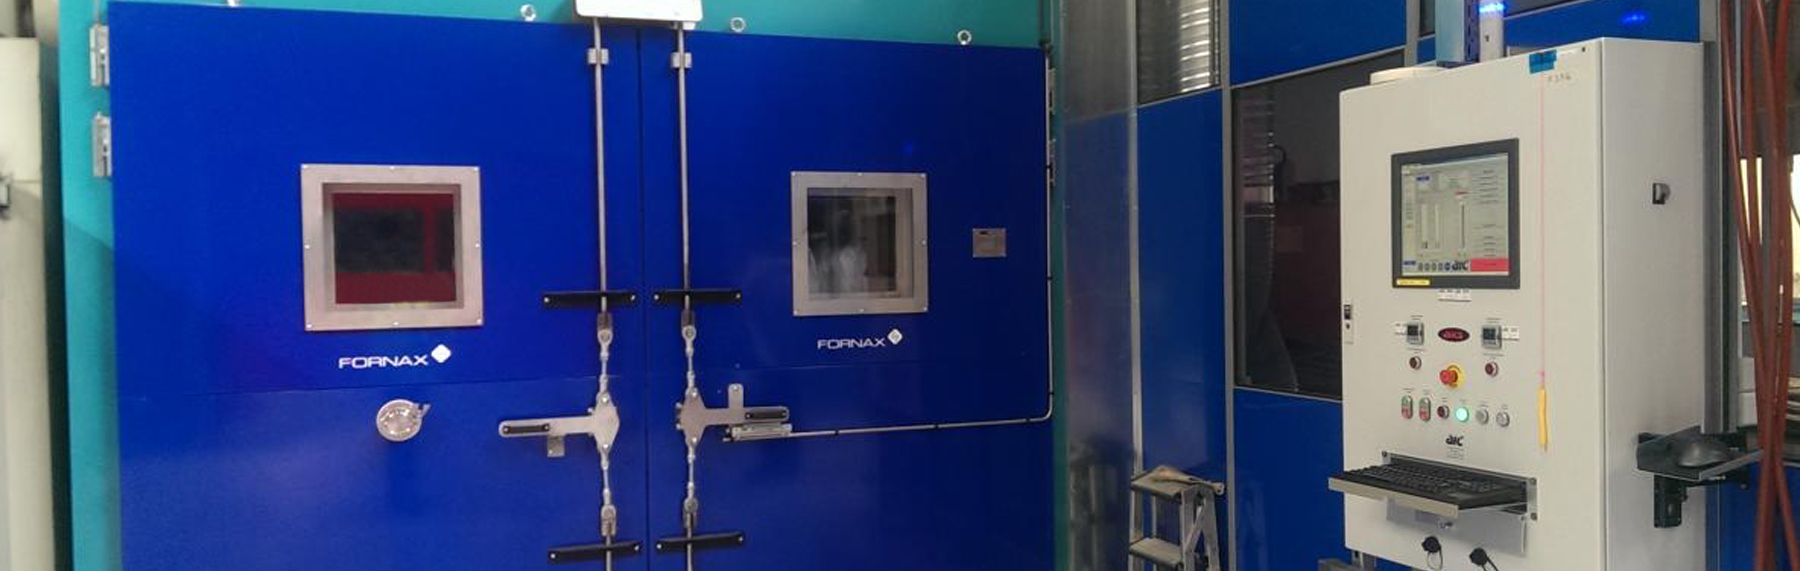 VFE Composite Curing oven